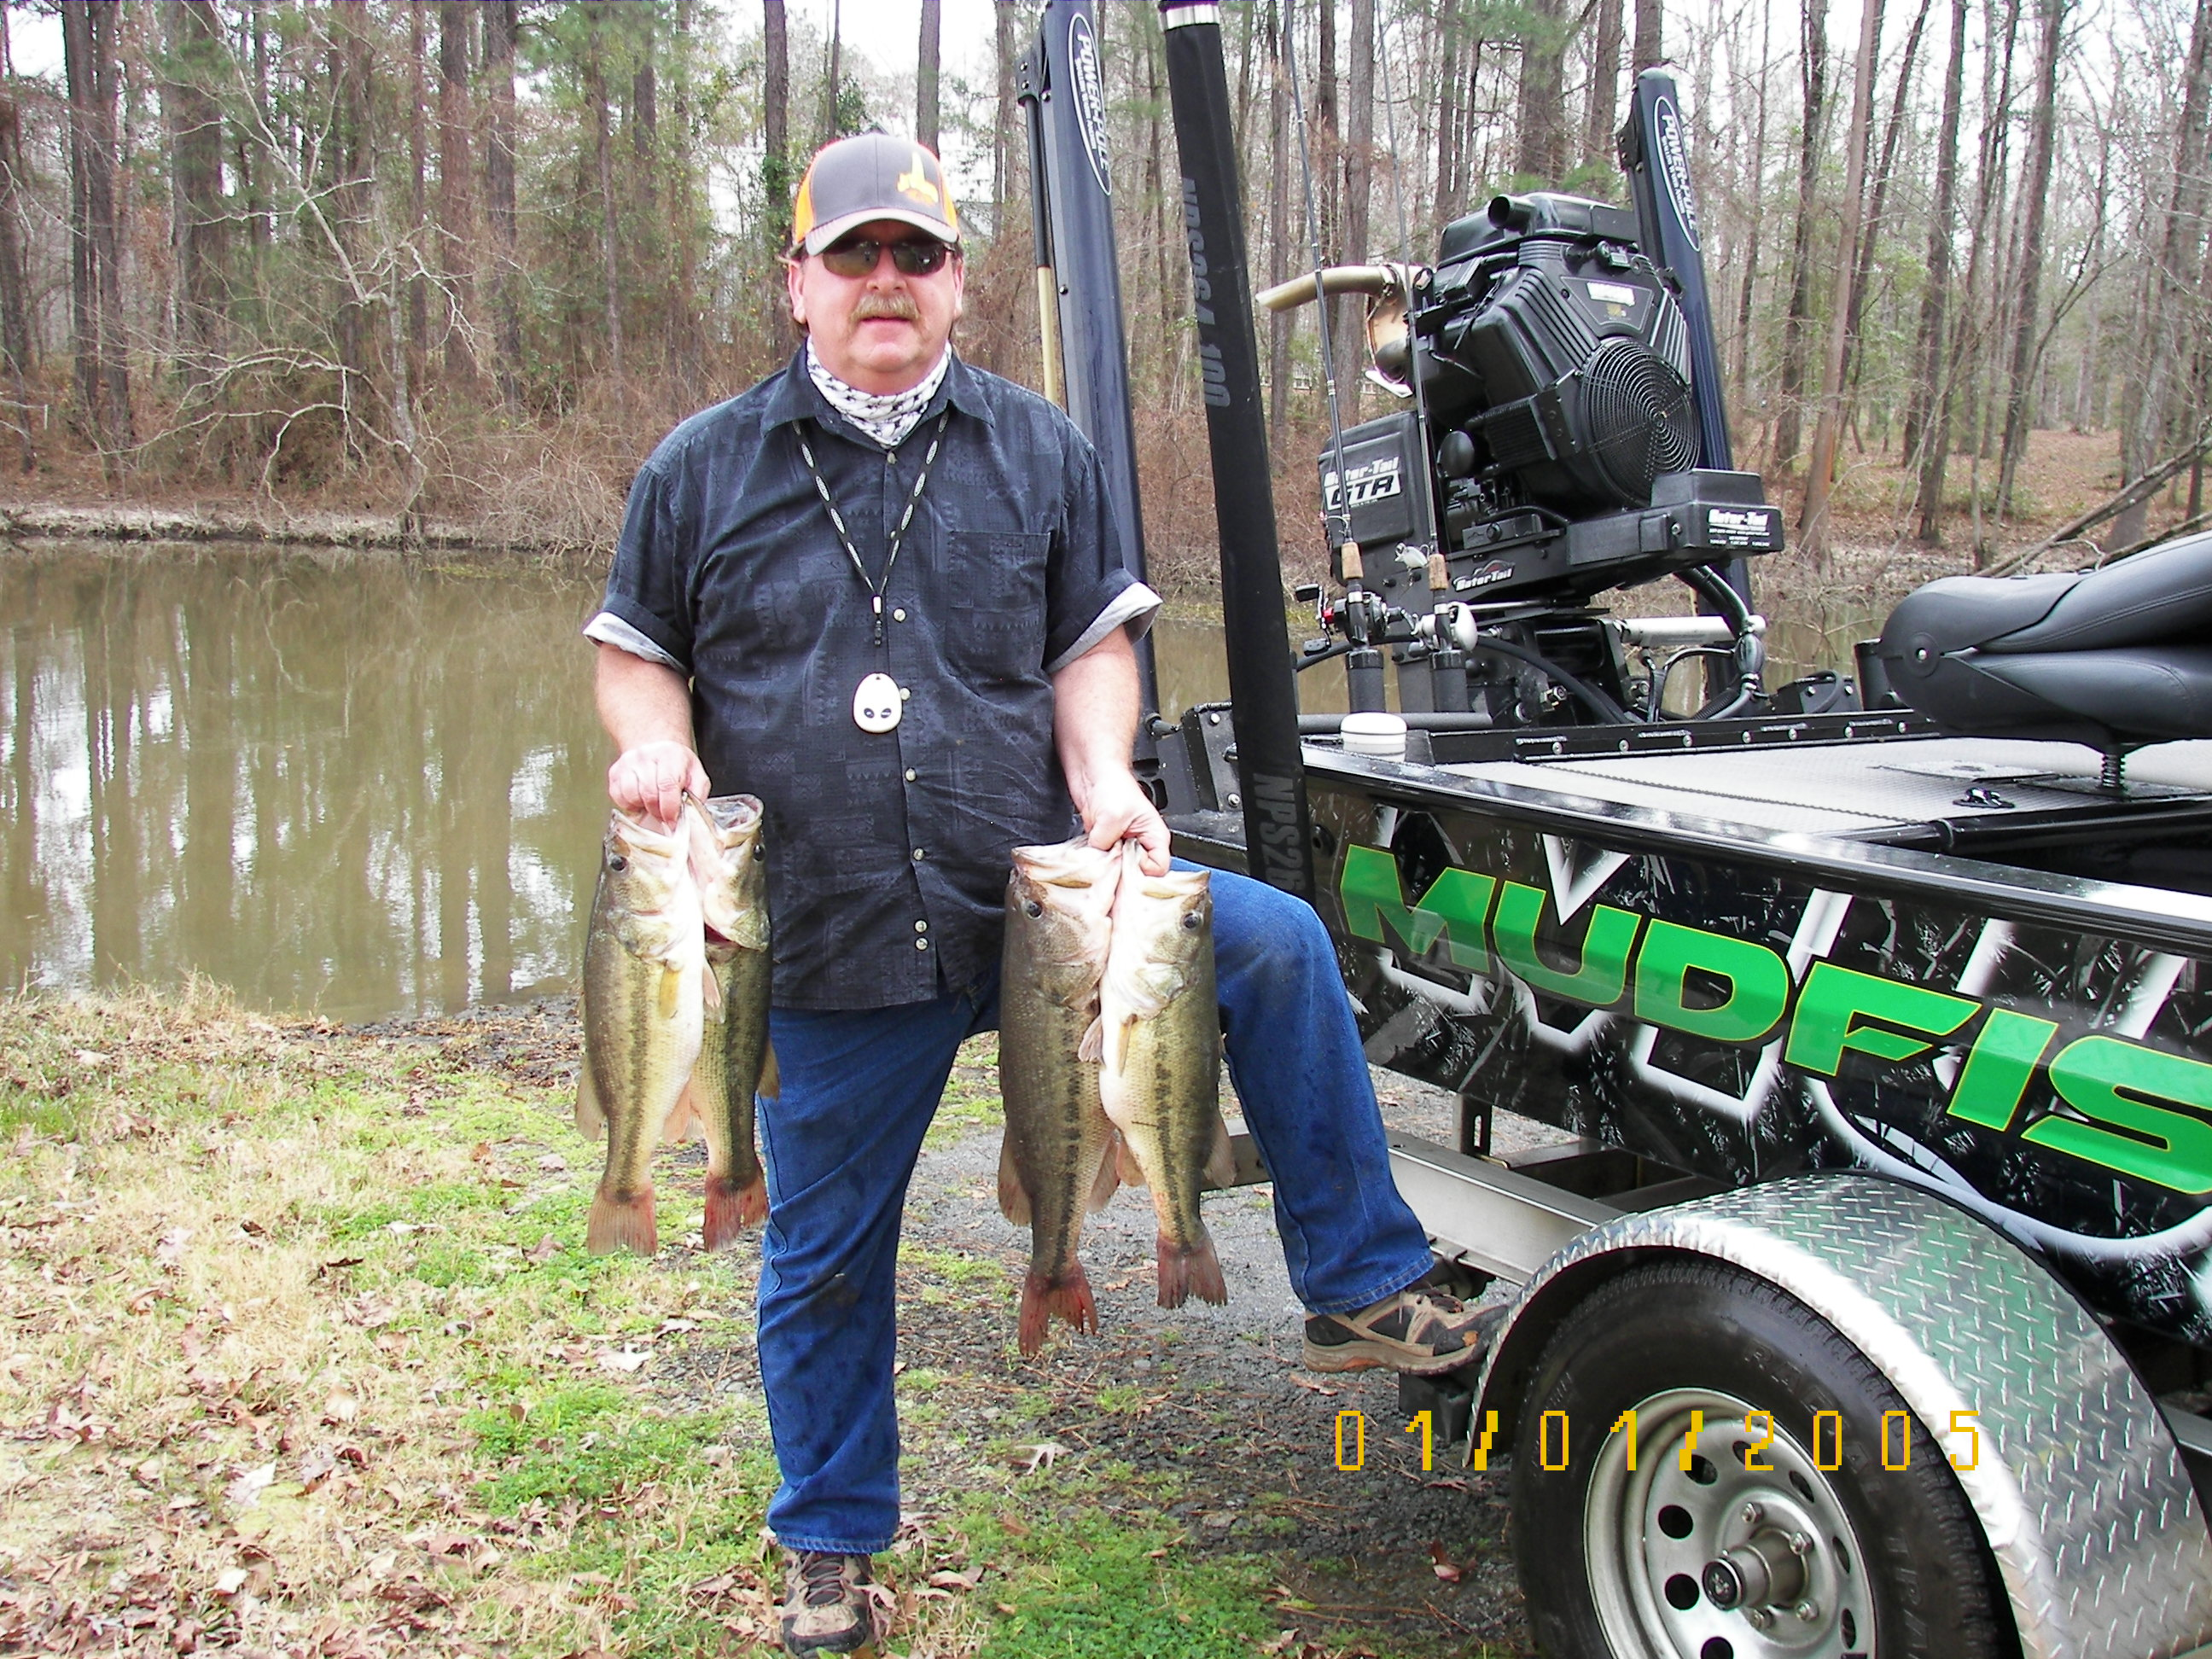 Toledo bend fishing guide mudfish adventures toledo bend for Toledo bend fishing report